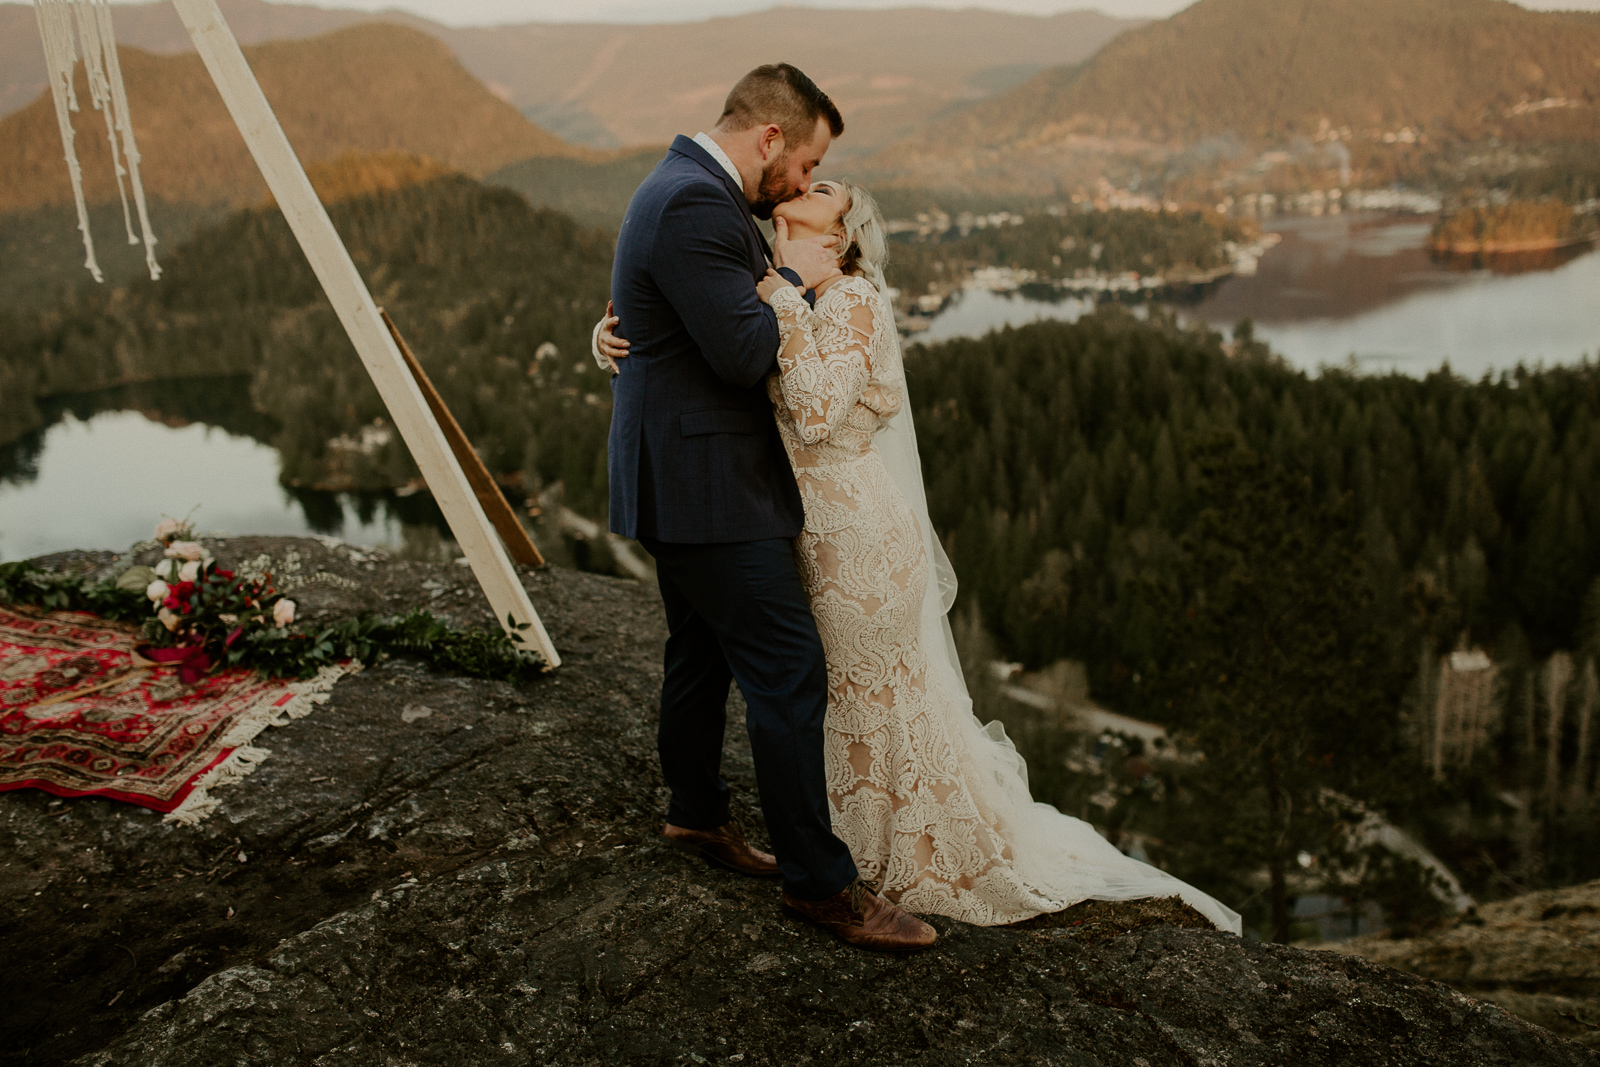 Luke Lambertson Photo_BritishColumbia_Canada_AdventurousCouple_Elopement_IMG-8461.jpg